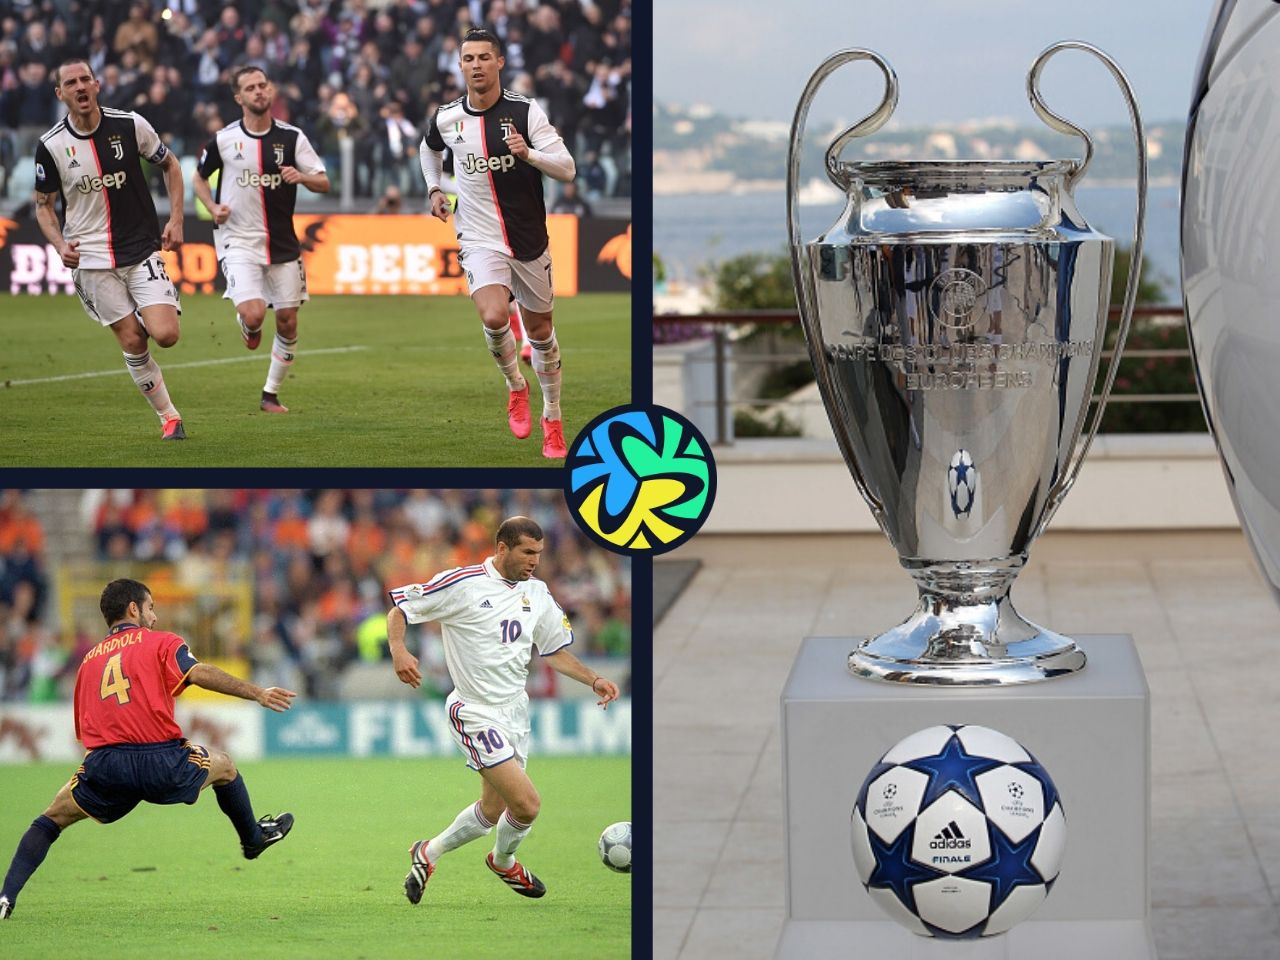 5 things to look out for in Champions League last-16